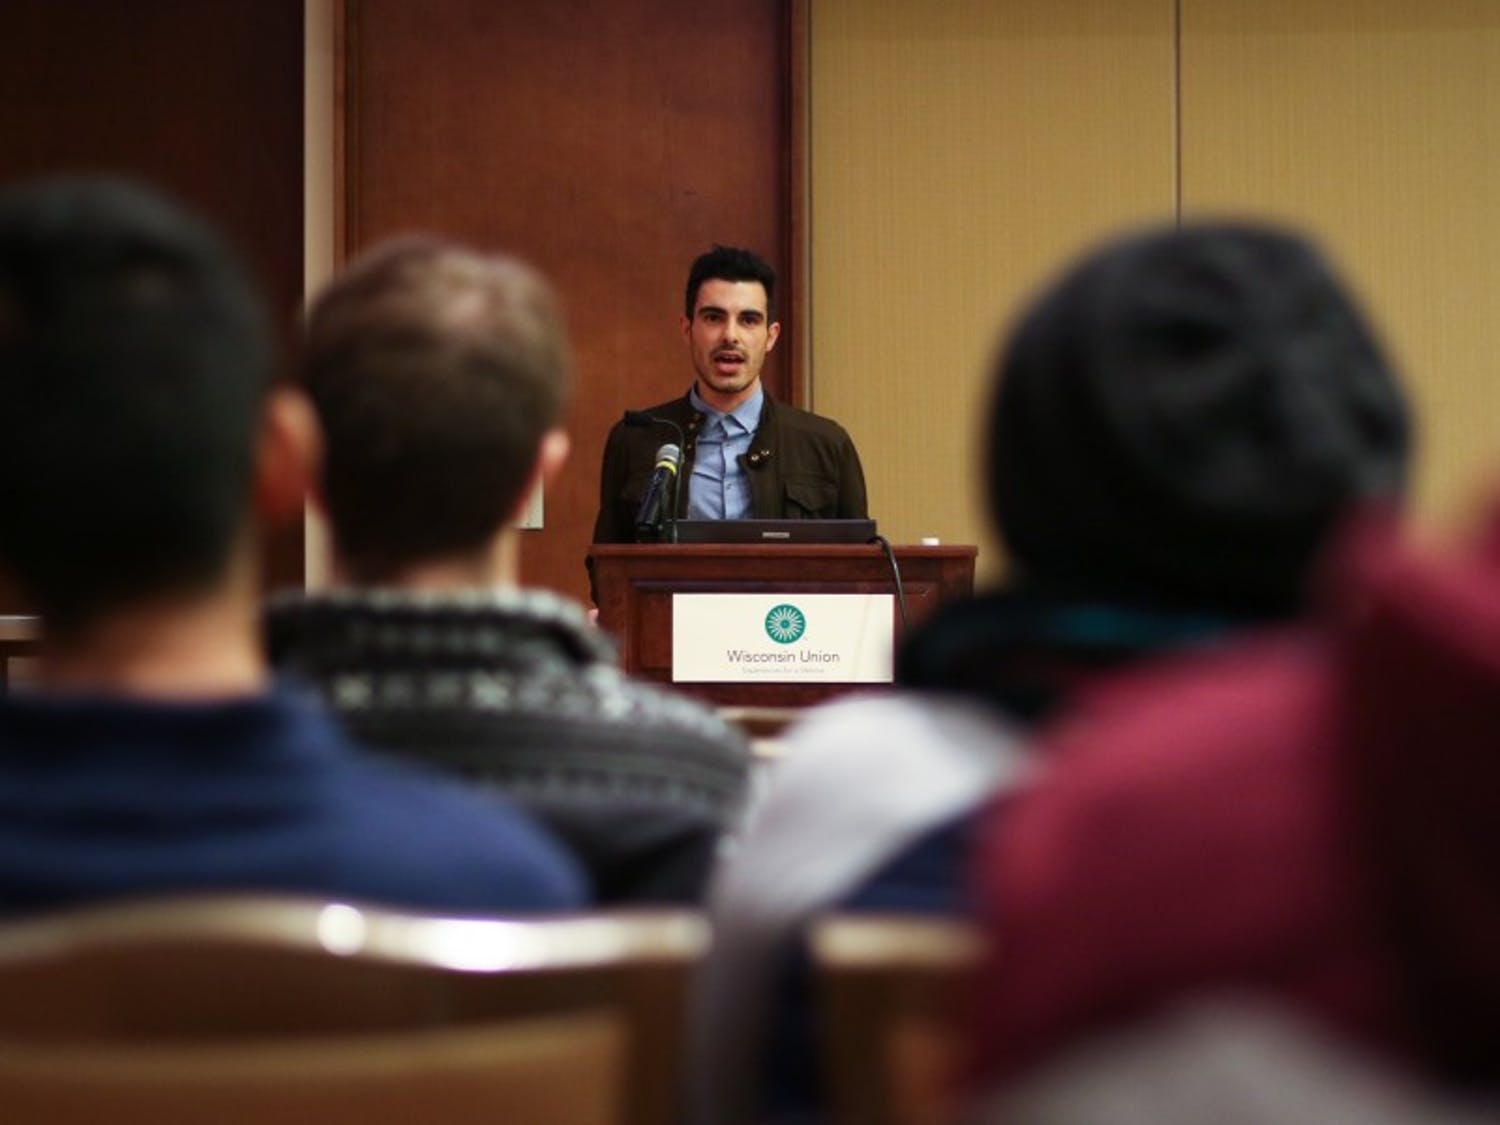 Subhi Nahas, aSyrian refugee, explains the experience of LGBTQ individuals in the Middle East  in his lecture as part of LGBTCC's Out & About Month.